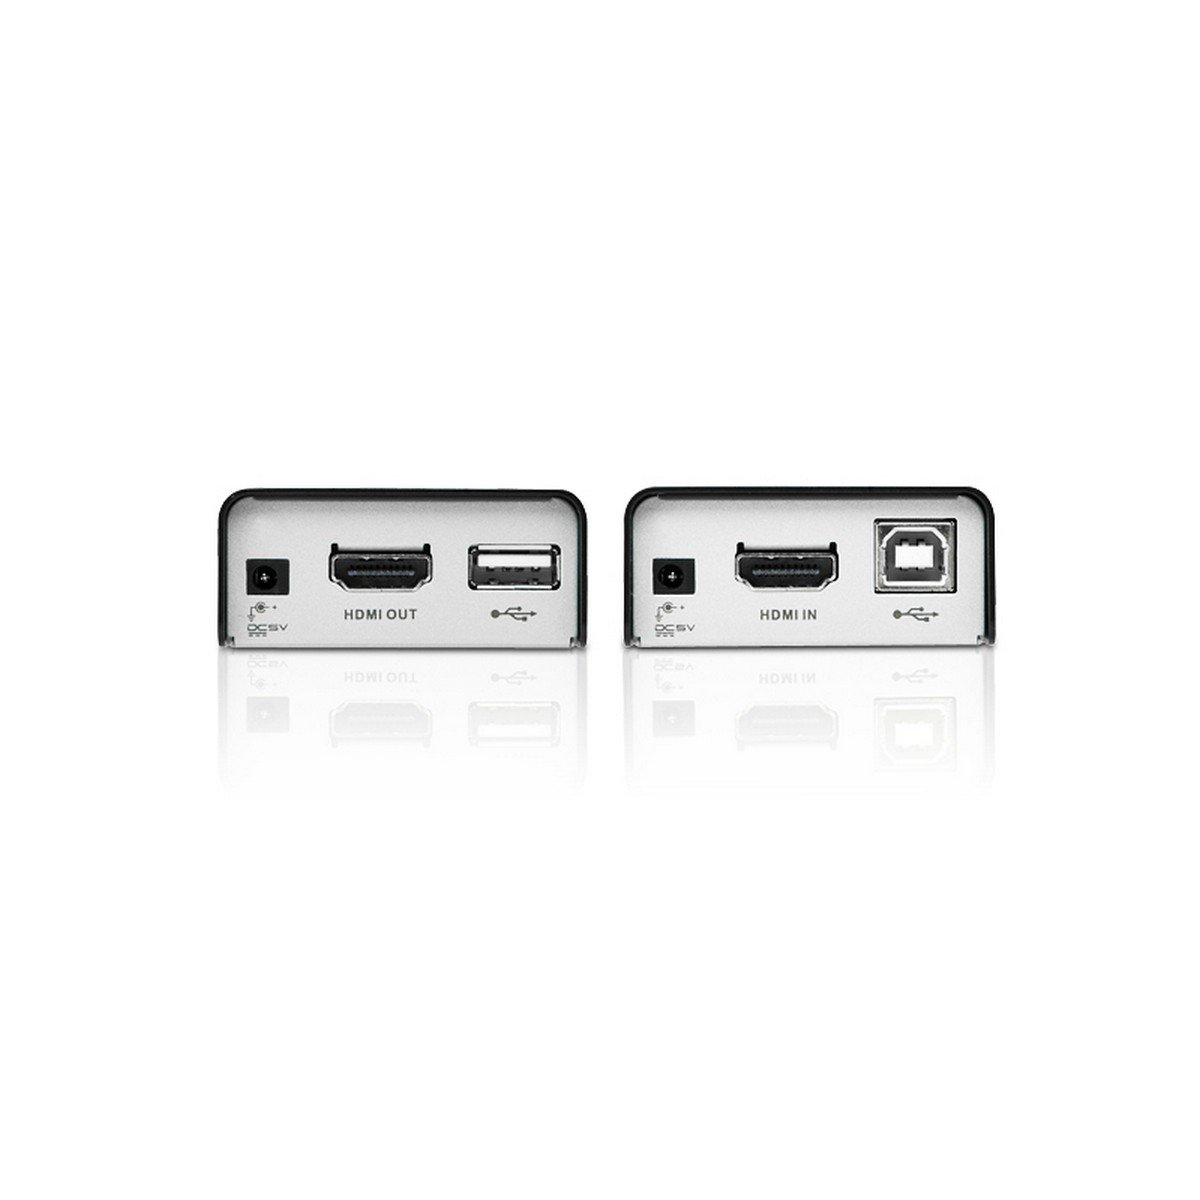 Aten VE803 HDMI USB Extender, Connects Up to 196.85'